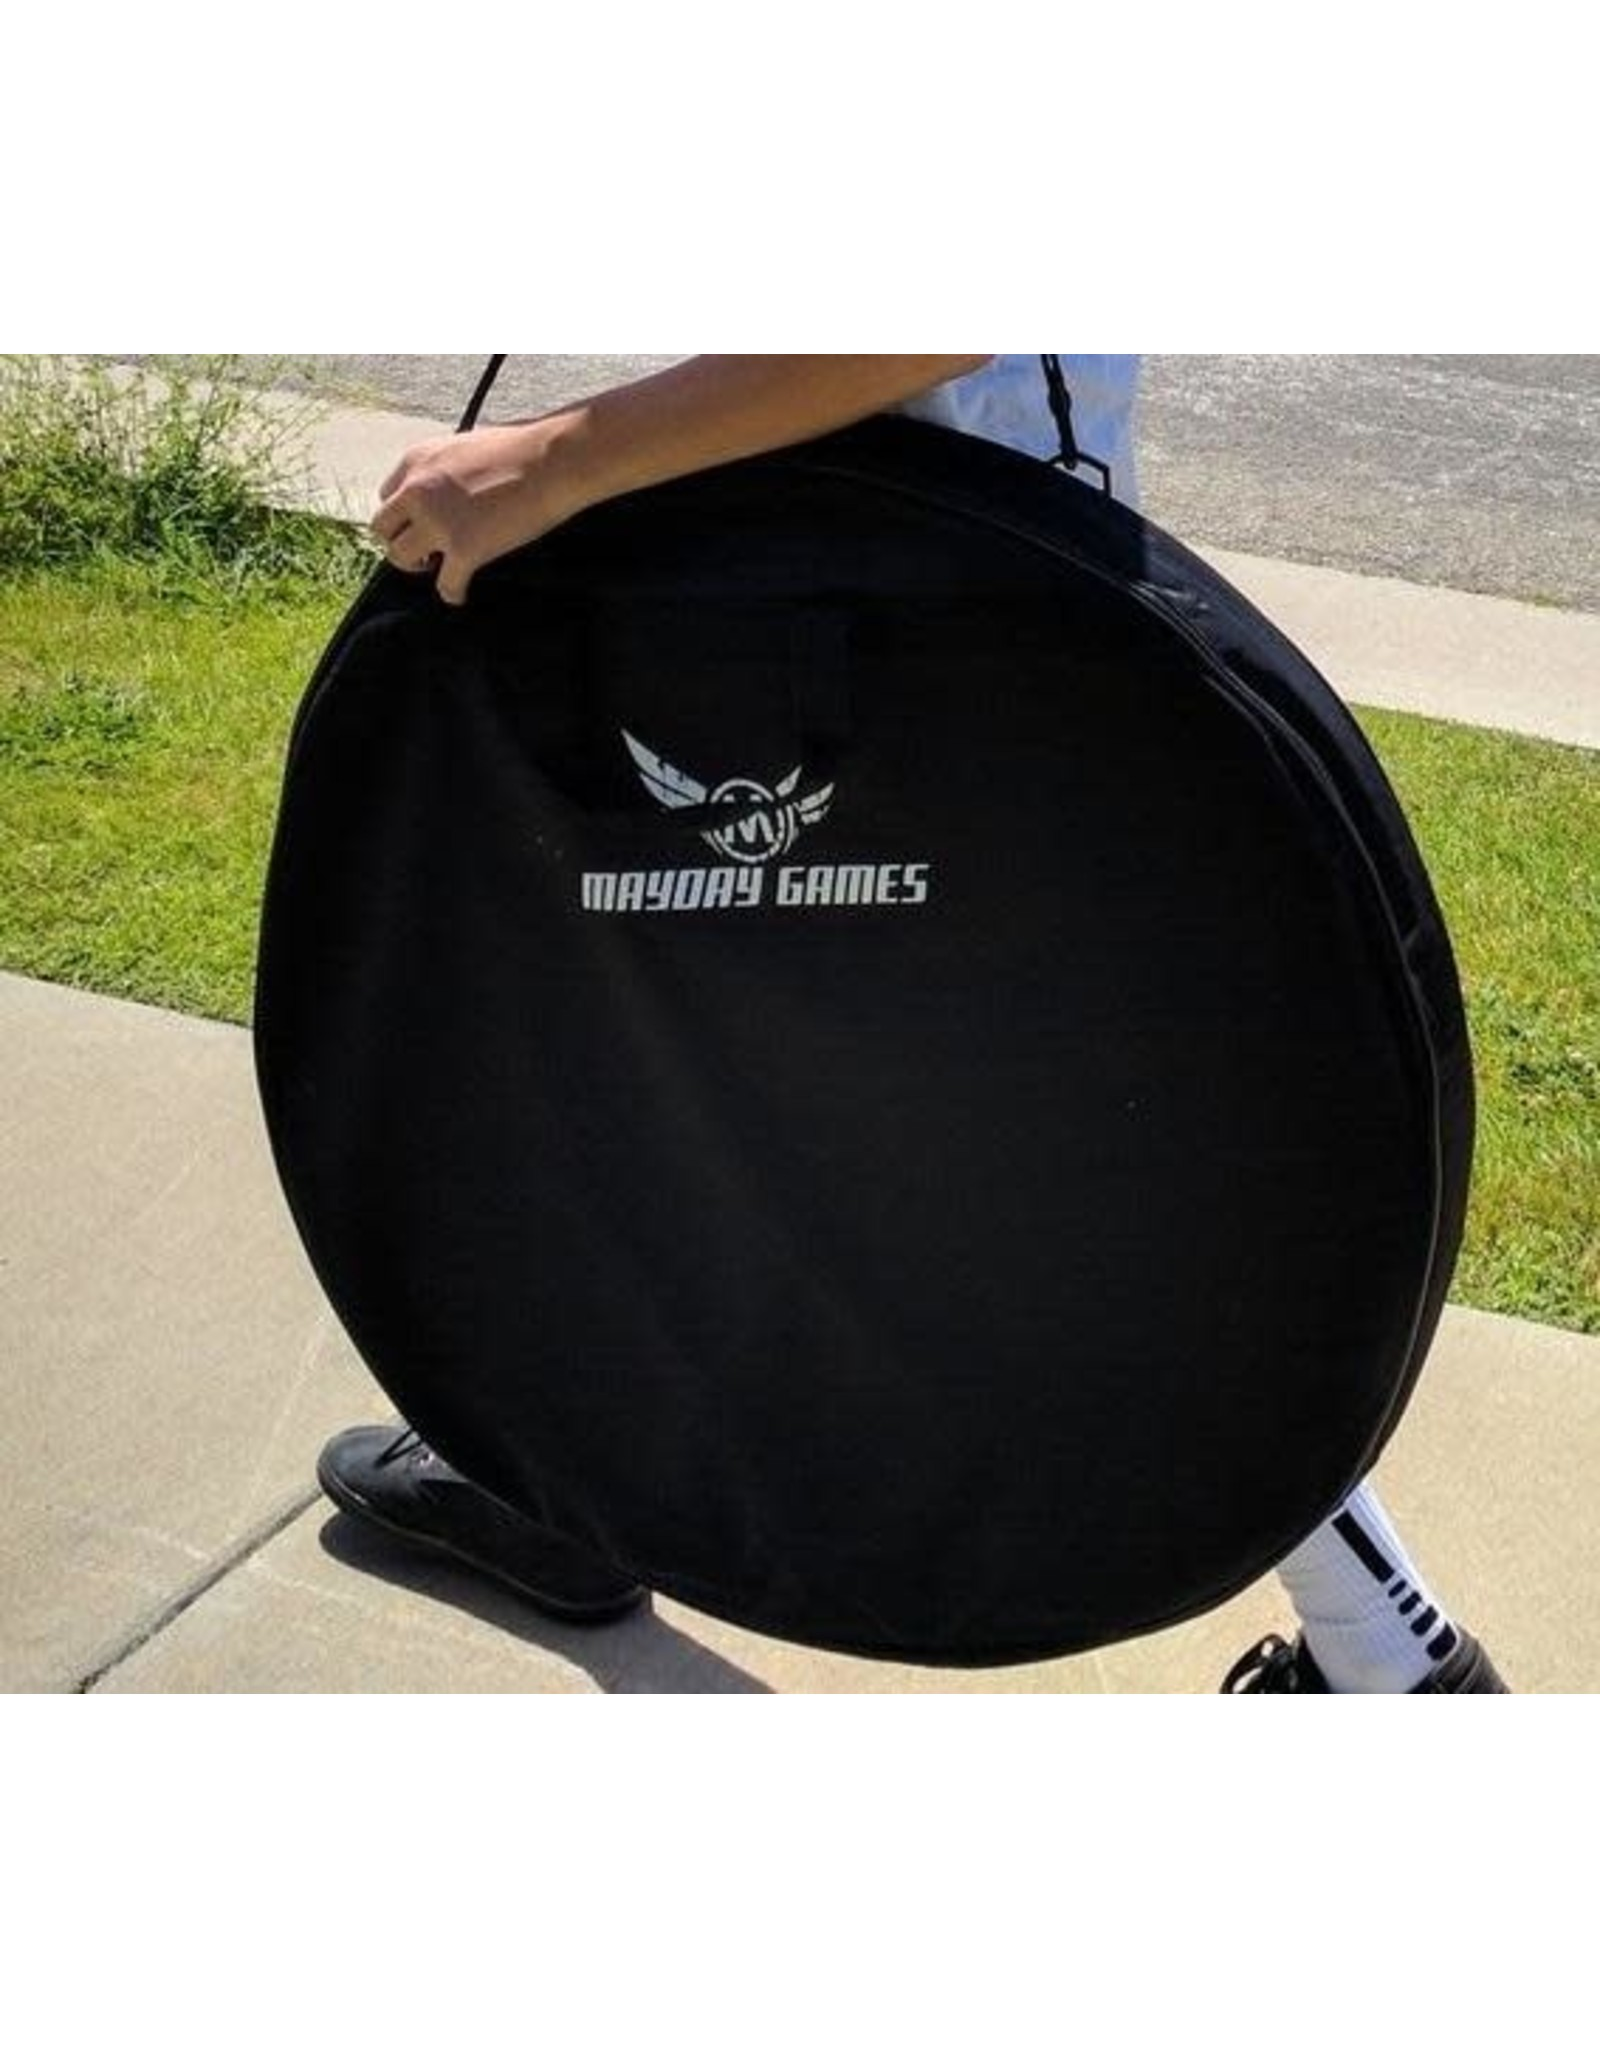 Mayday Games Delux Crokinole Carrying Case Black Round